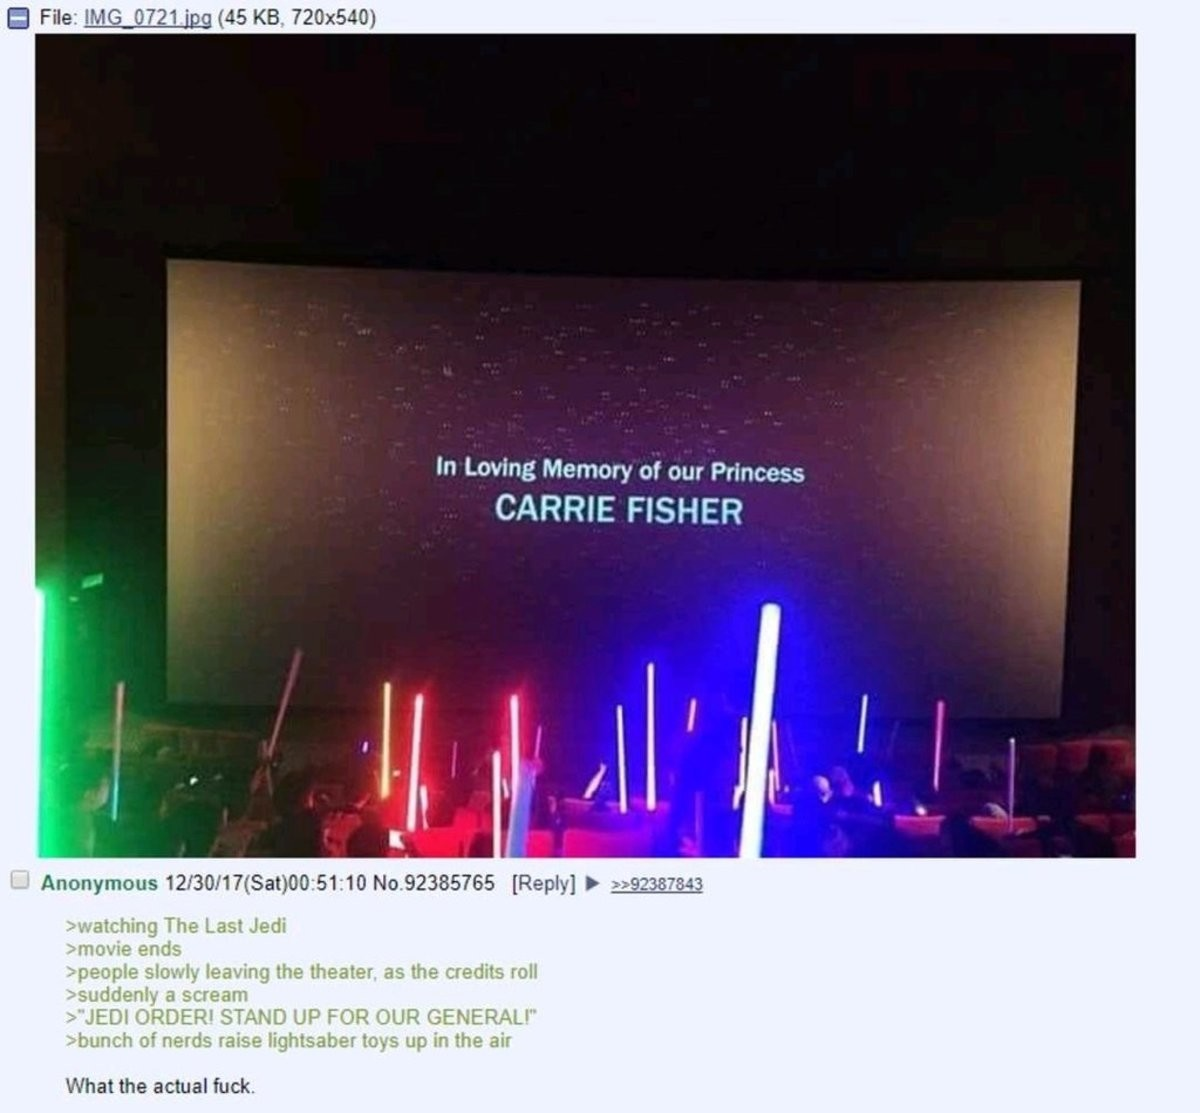 Anon Goes To Watch Star Wars. . in Loving Memory of our Princess CARRIE FISHER What the actual fuck-. Your lack of faith in the Star Wars fanbase is disturbing.